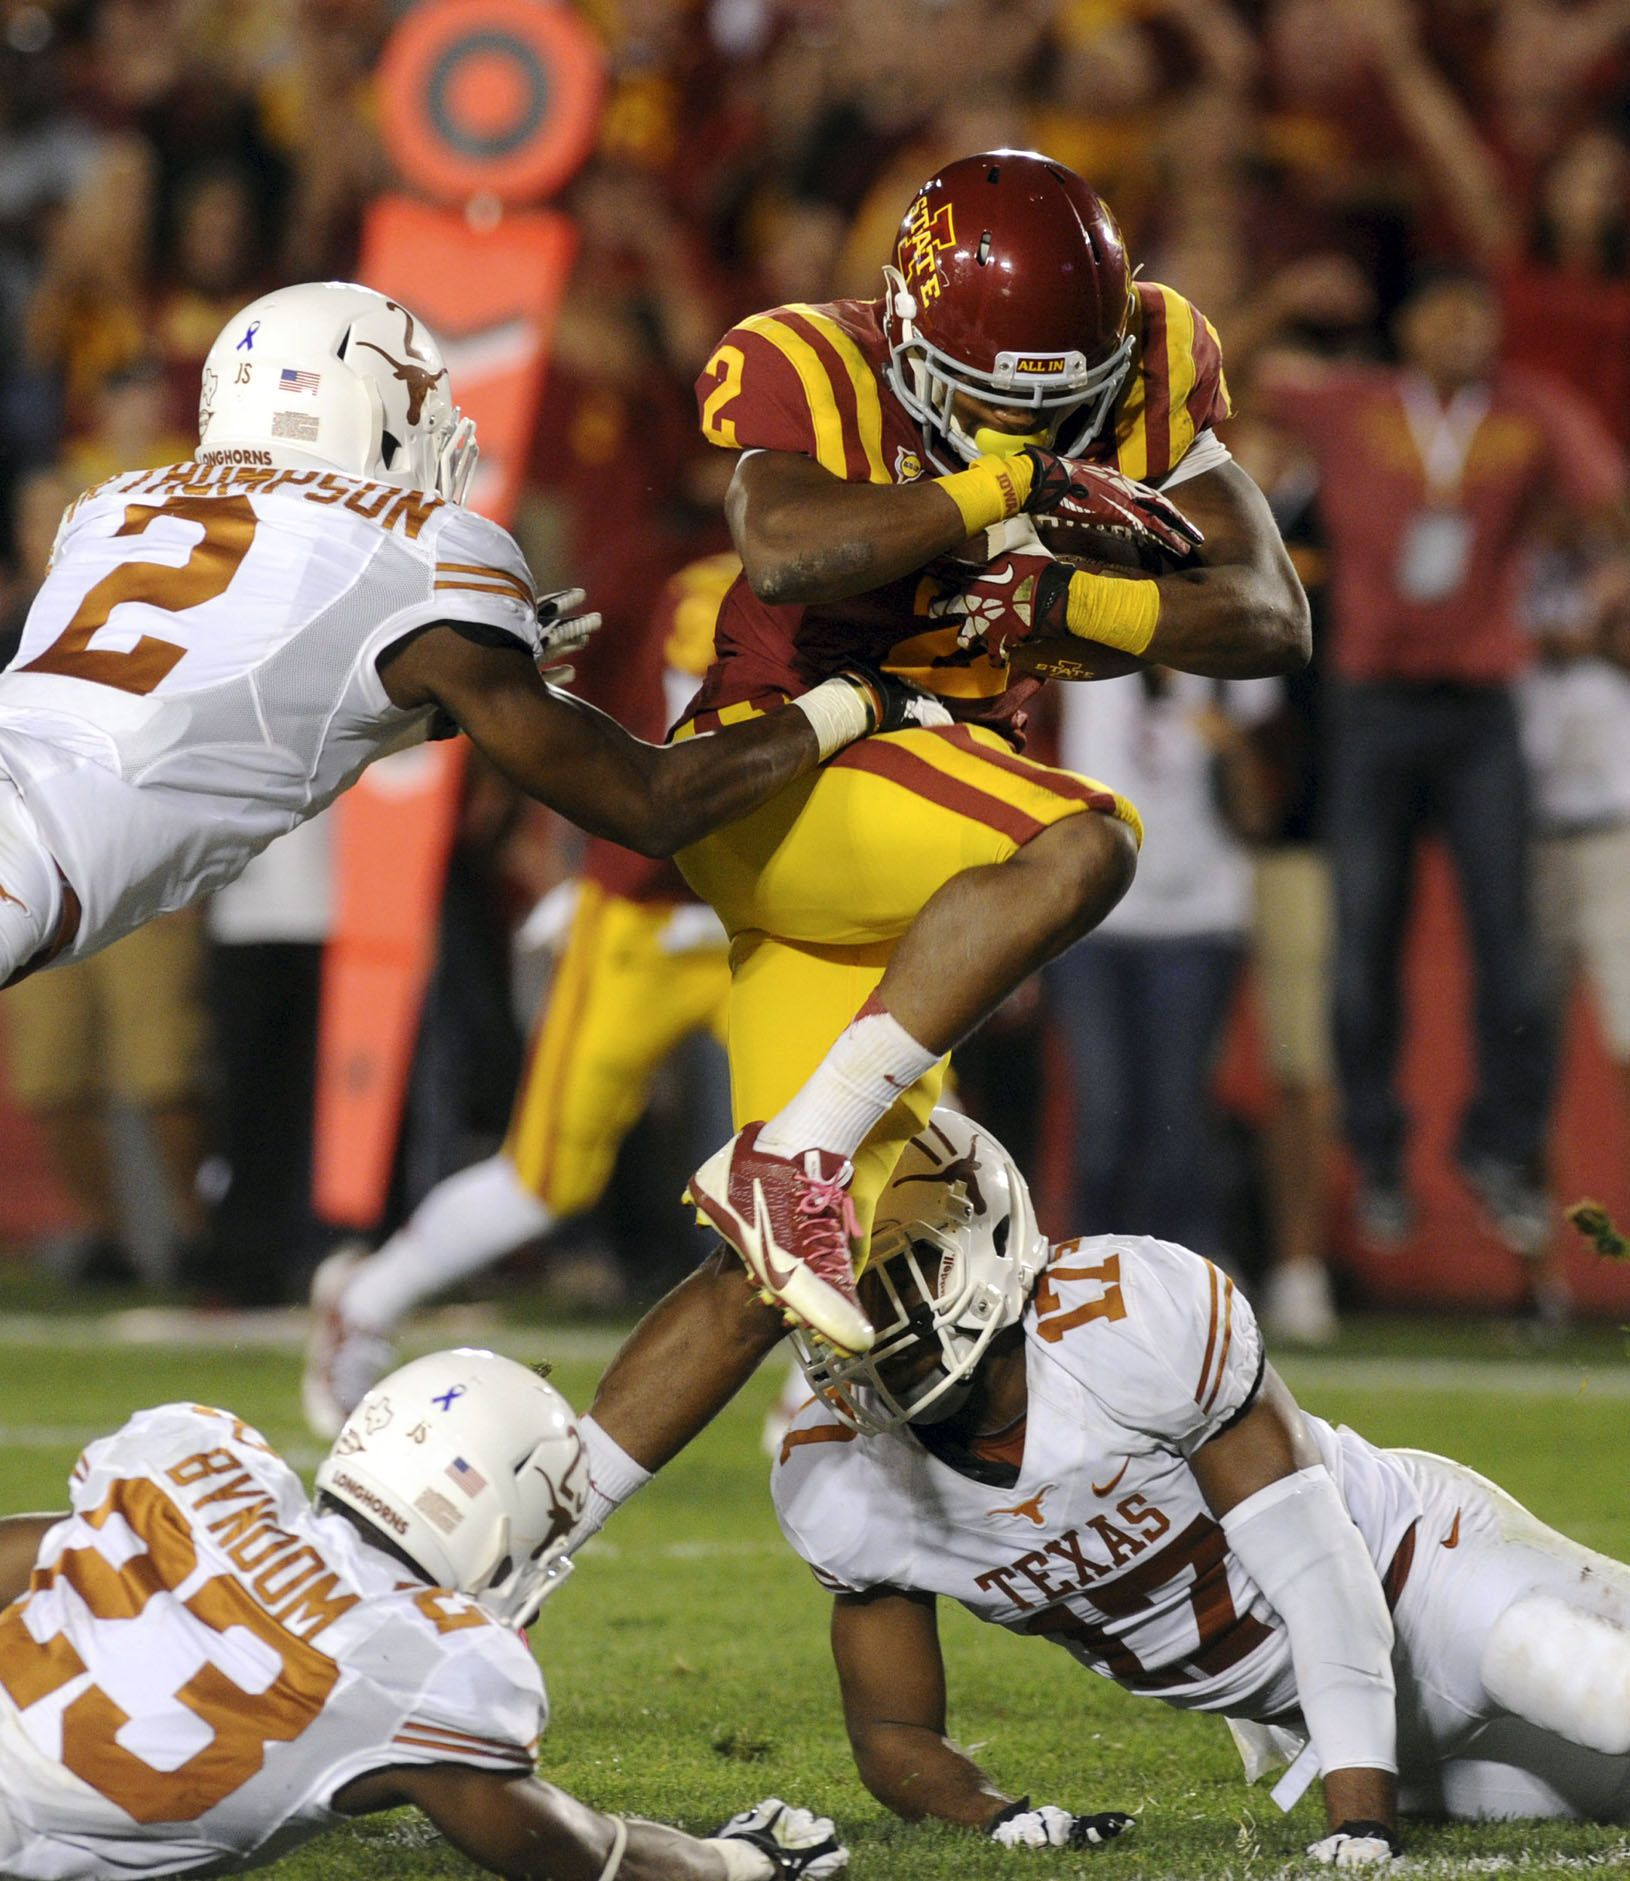 Iowa State's running back Aaron Wimberly drives for touch